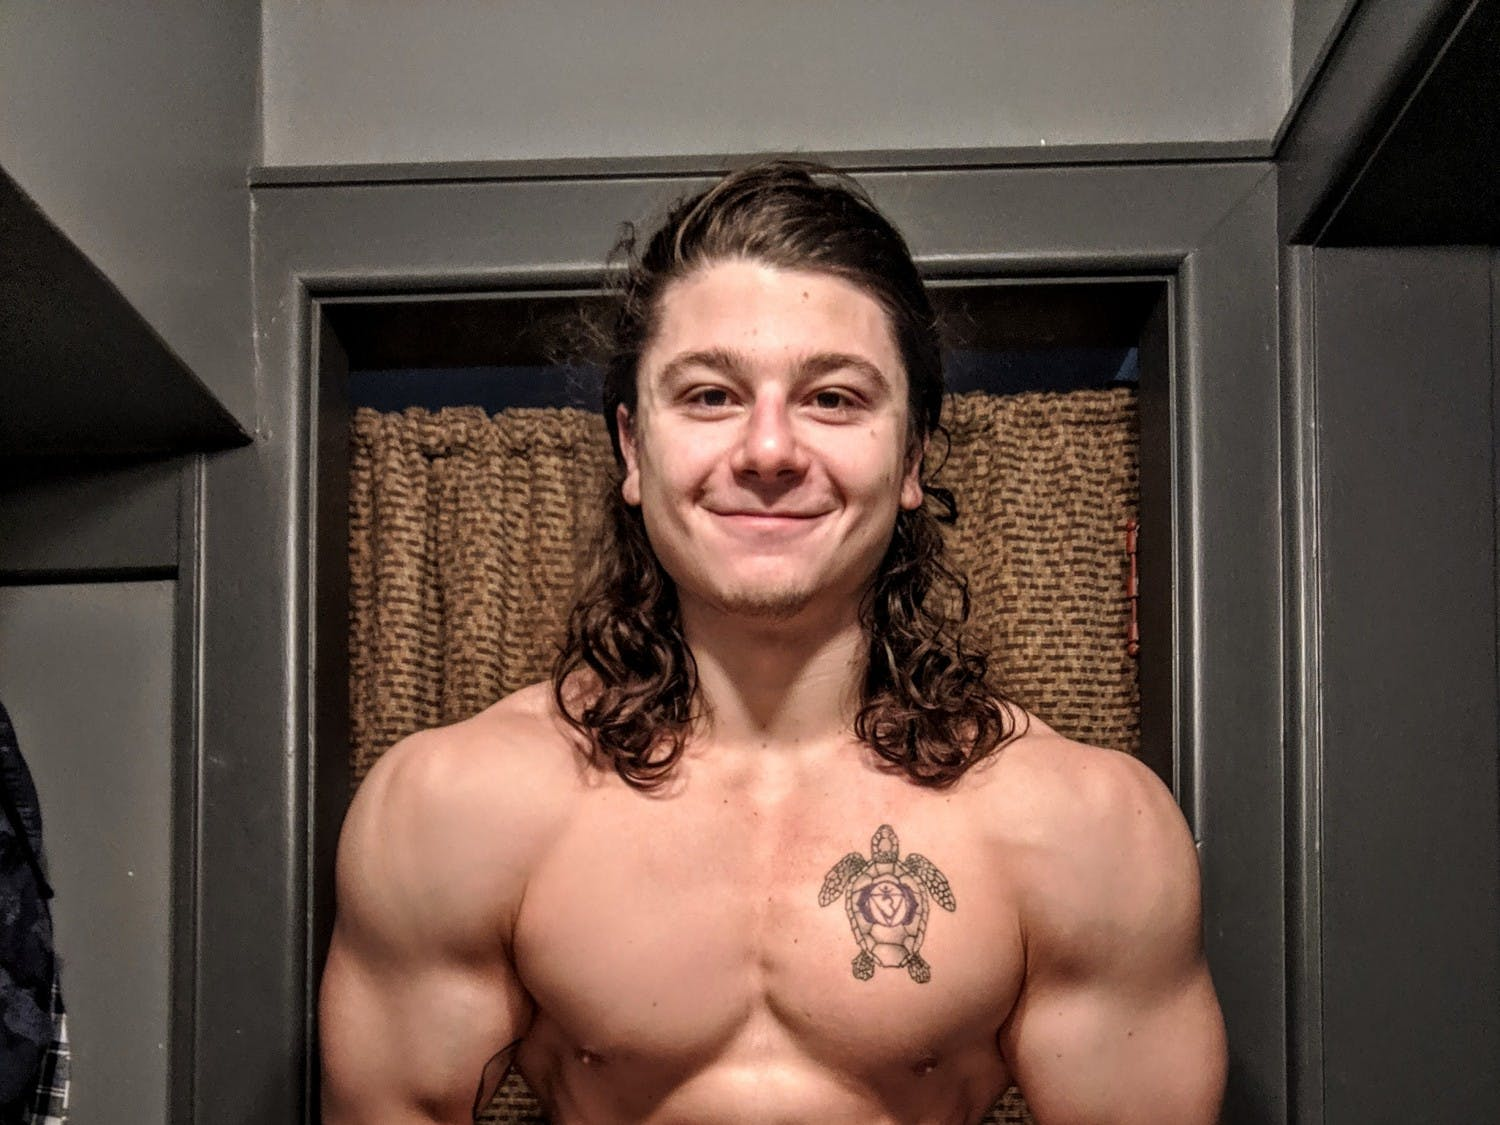 Cole Hastings, a UB alumni, has established a personal training service through individual coaching, plant-based meal plans and personalized workout routines.